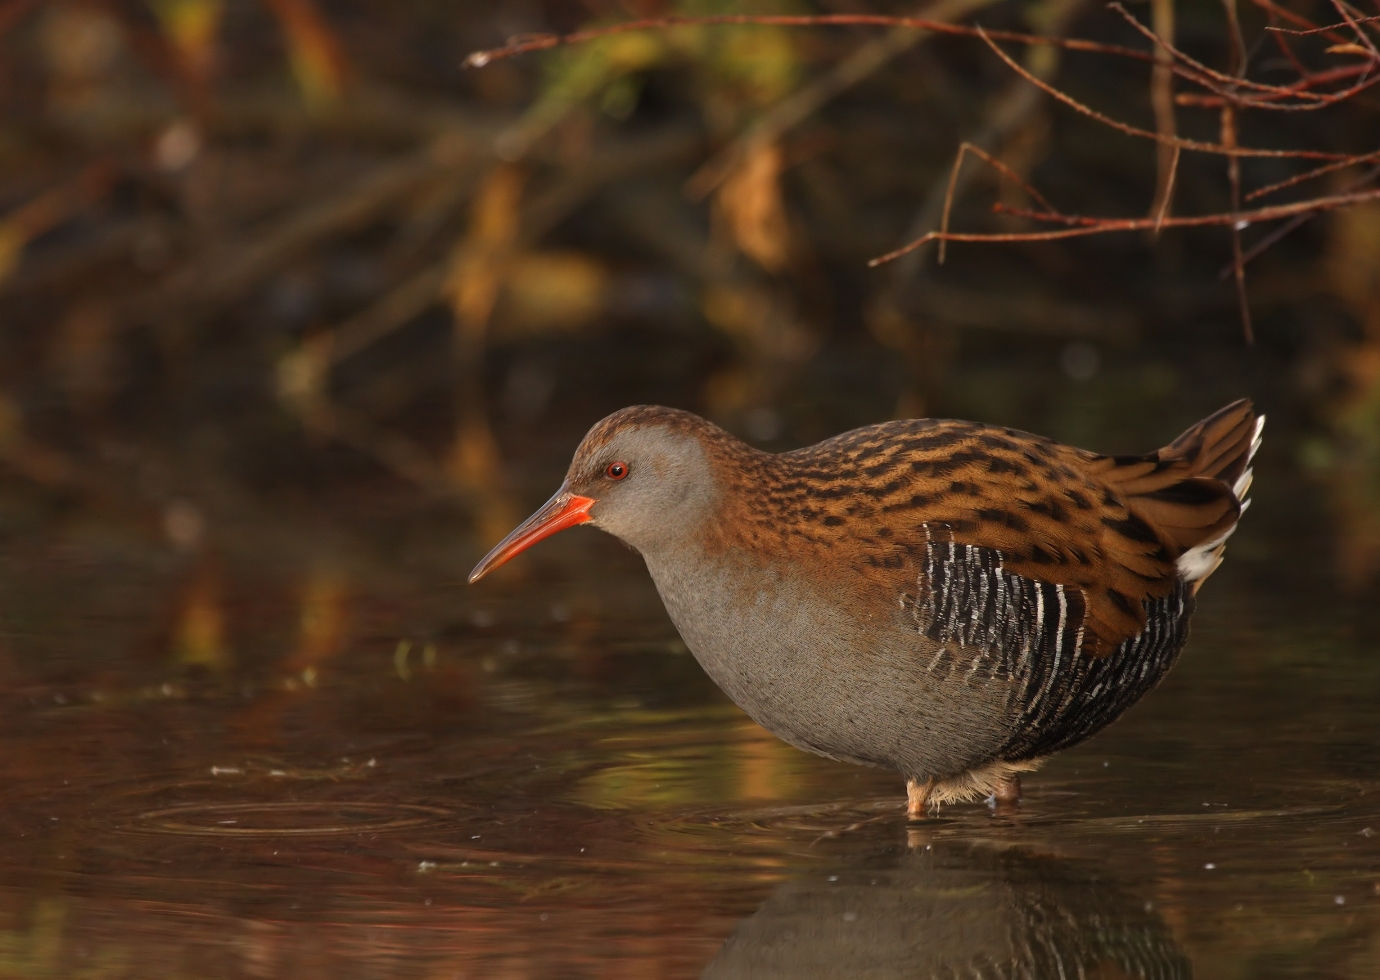 A water rail moves through the water